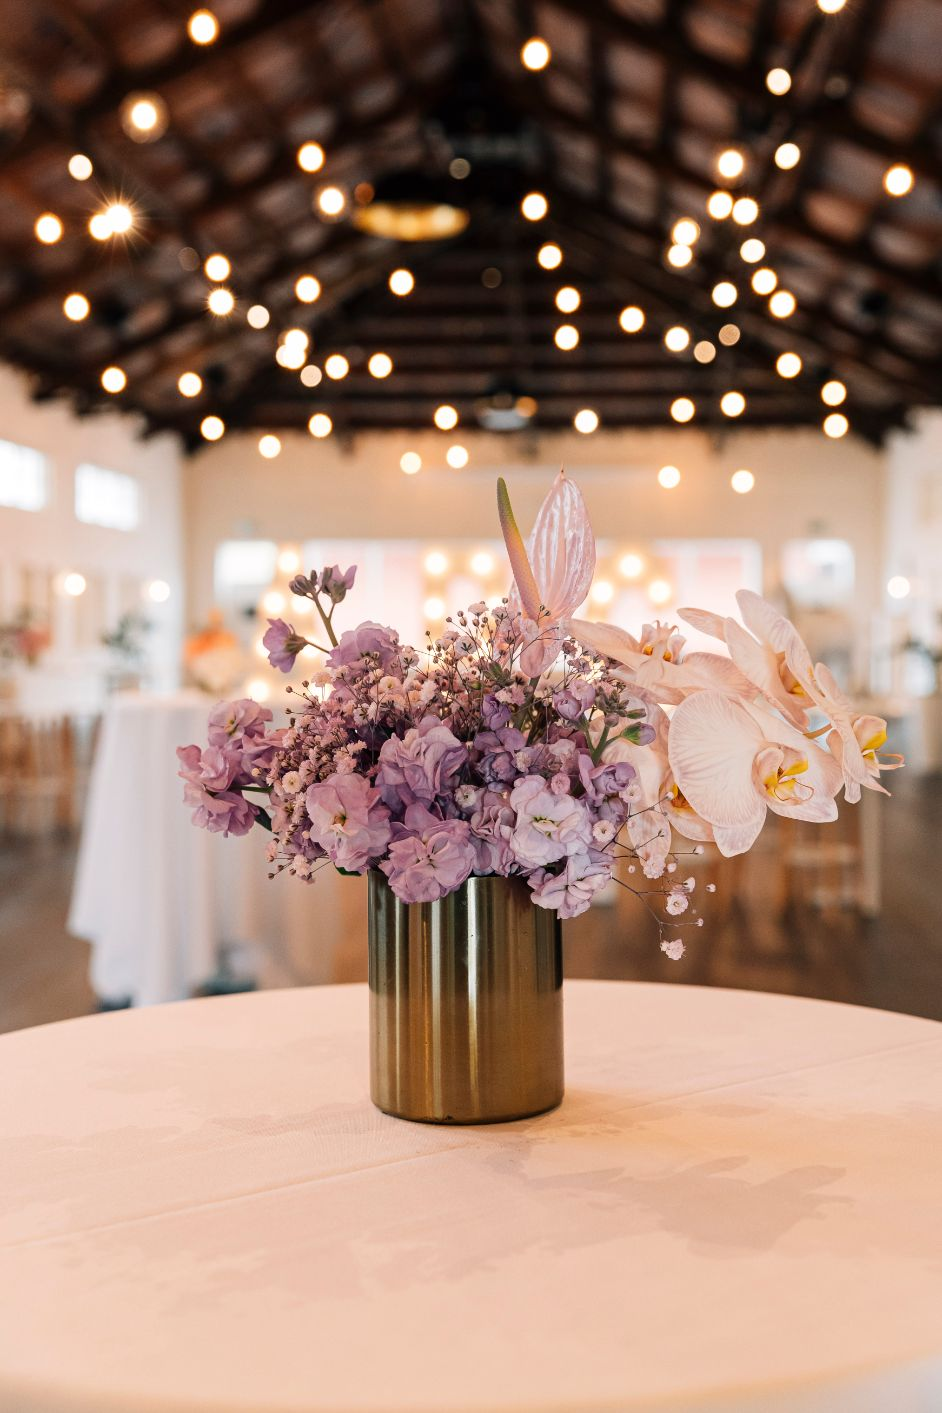 We work closely with a number of theme designers to help bring events to life - as seen in this gorg